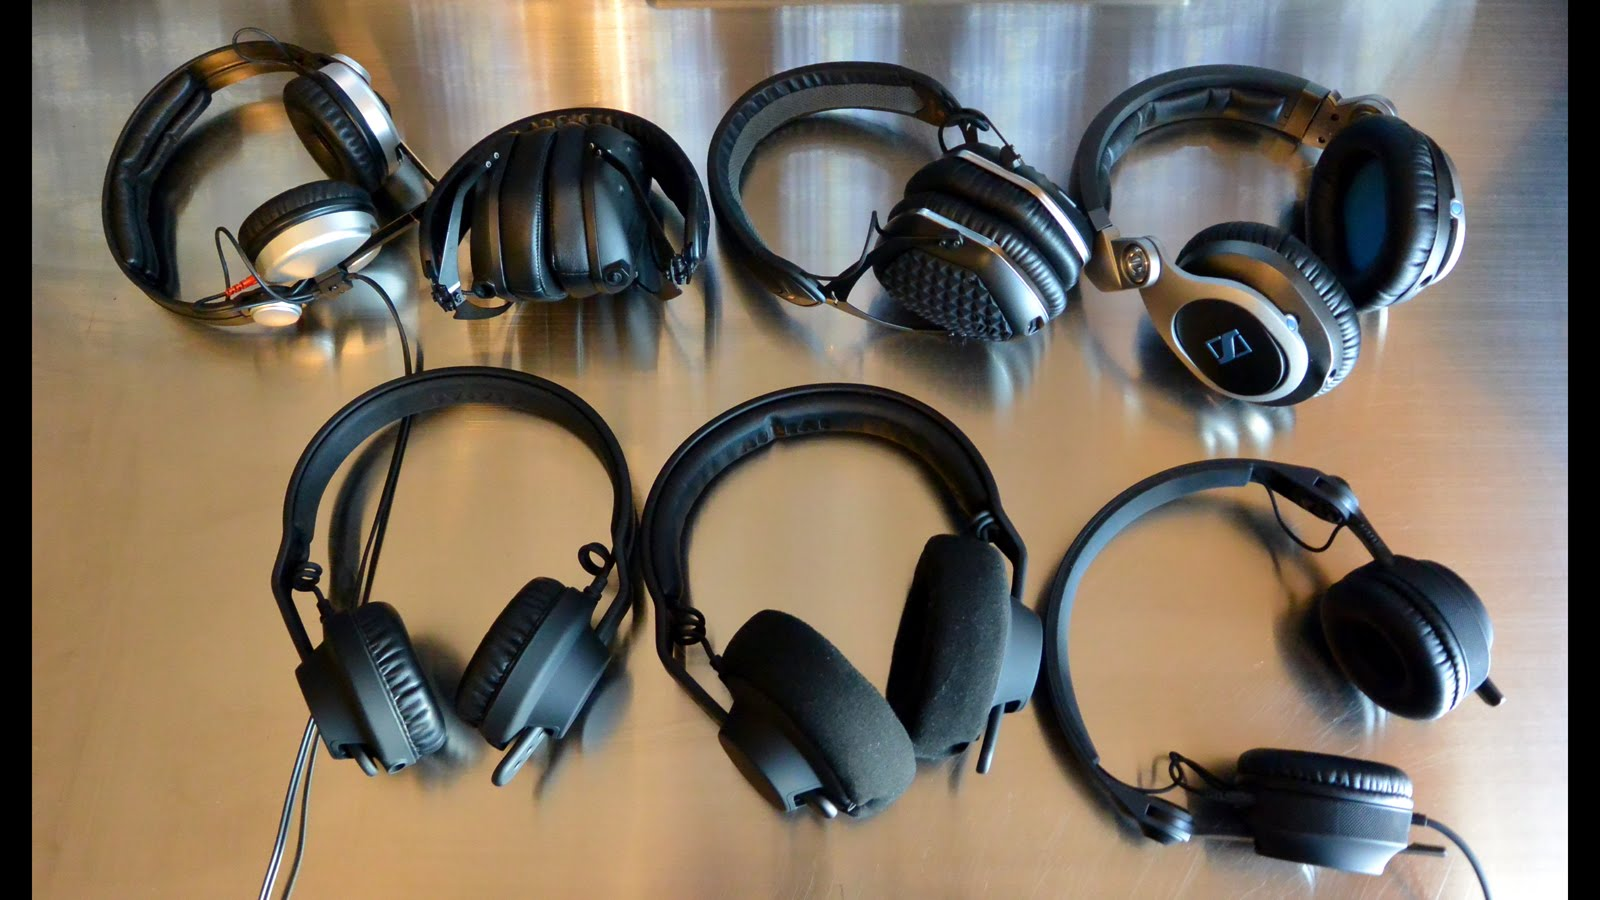 Best DJ Headphones Under $100 Bucks 2019